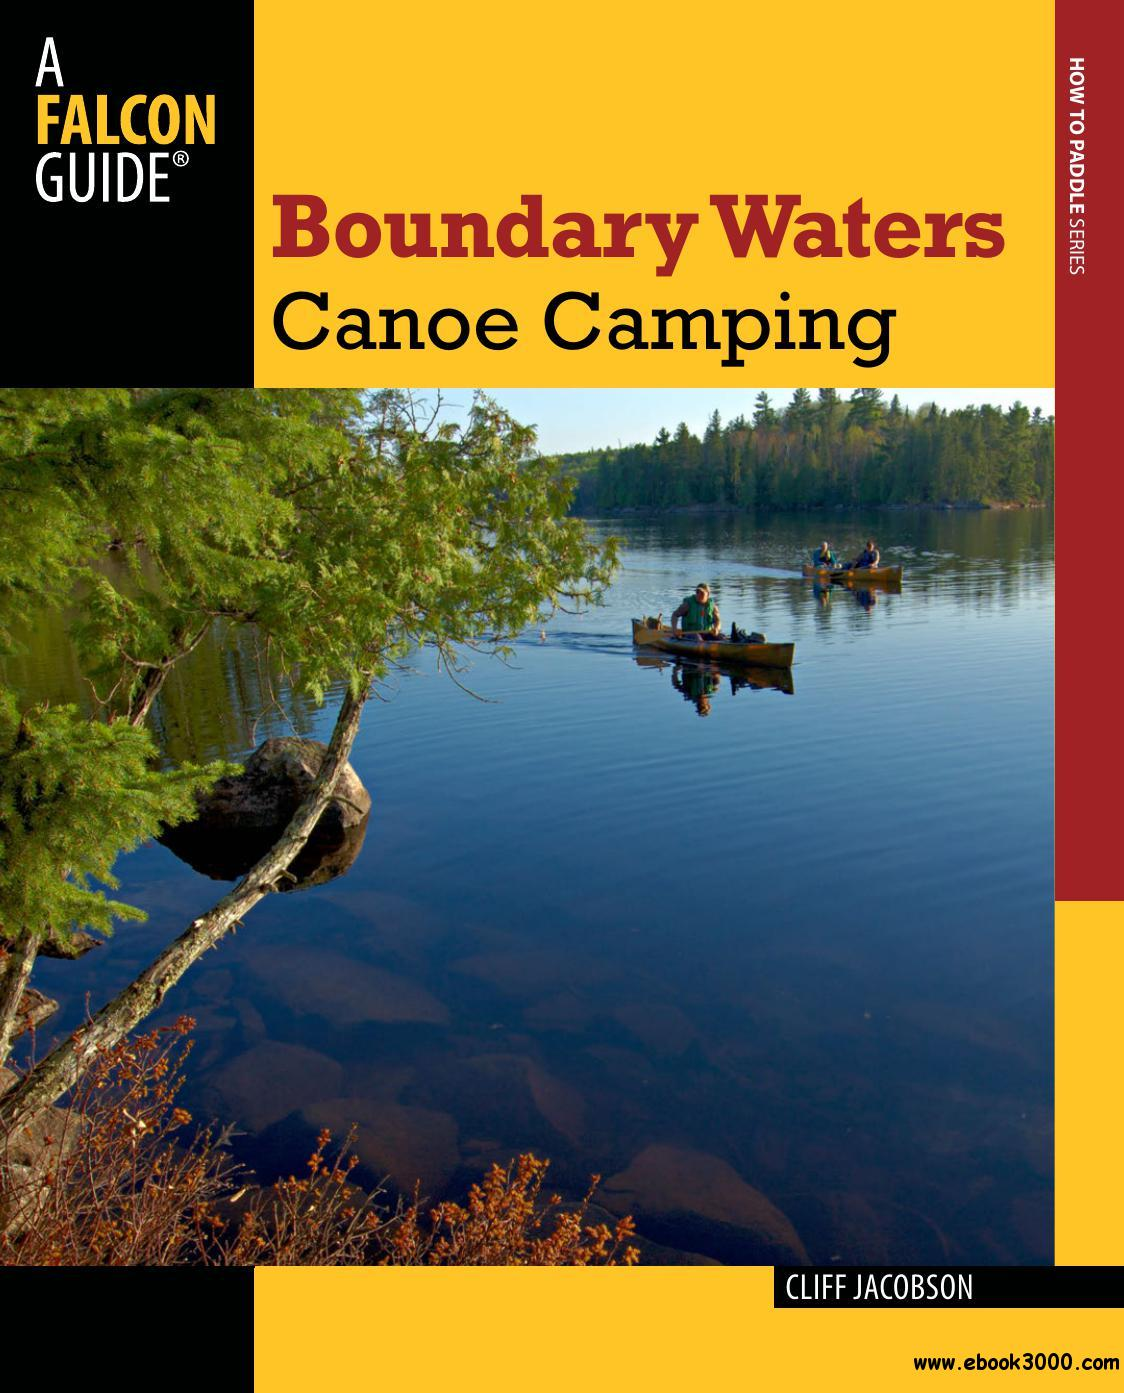 Boundary Waters Canoe Camping, Third Edition free download